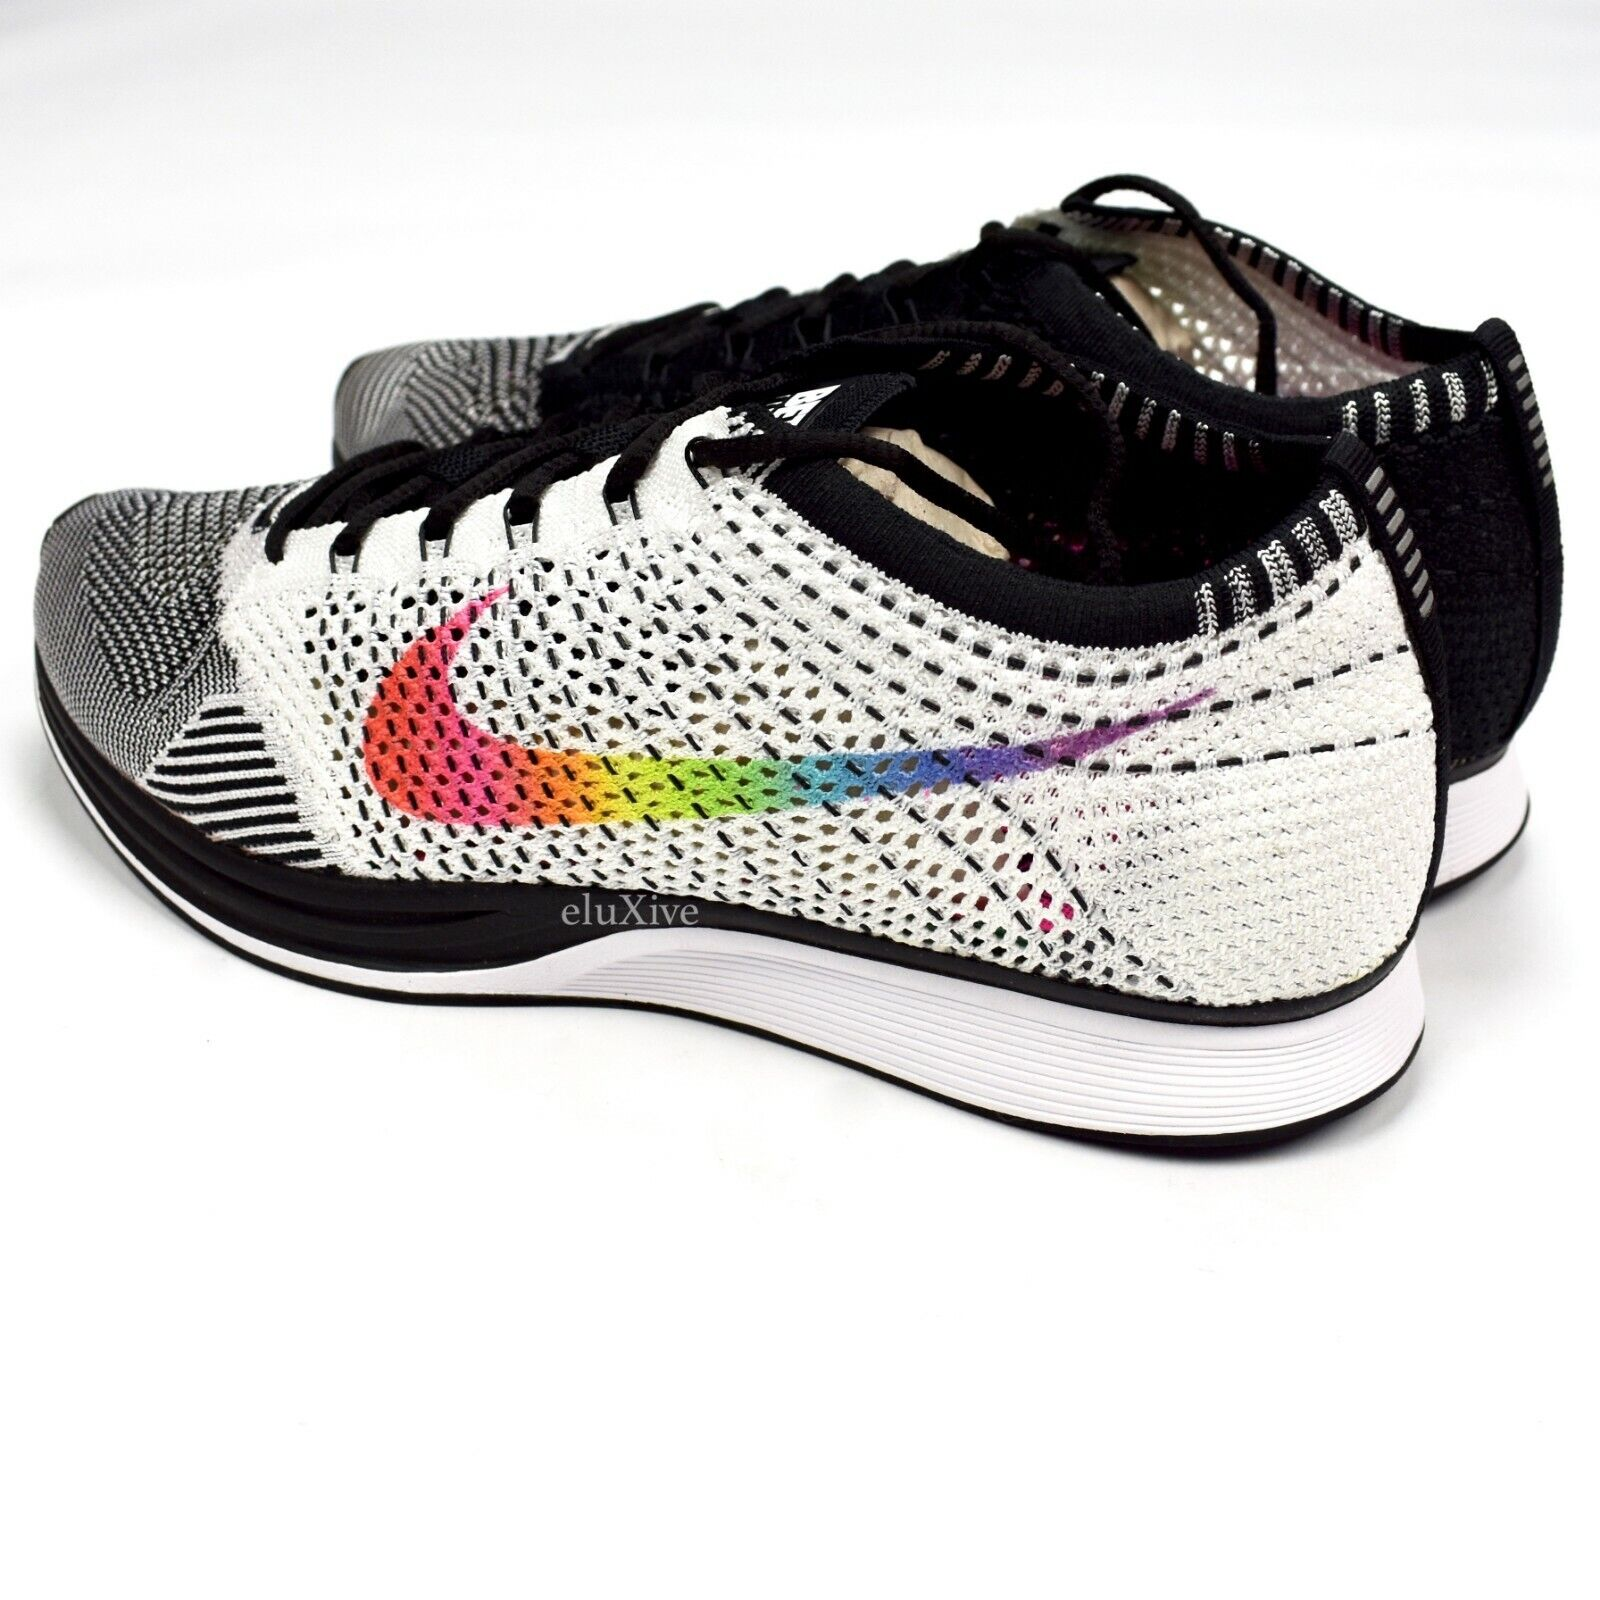 competitive price d8fb4 e1b8a ... NWT Nike Nike Nike Flyknit Racer BeTrue Rainbow Swoosh Men s Sneakers  DS 2017 AUTHENTIC d4c10c ...